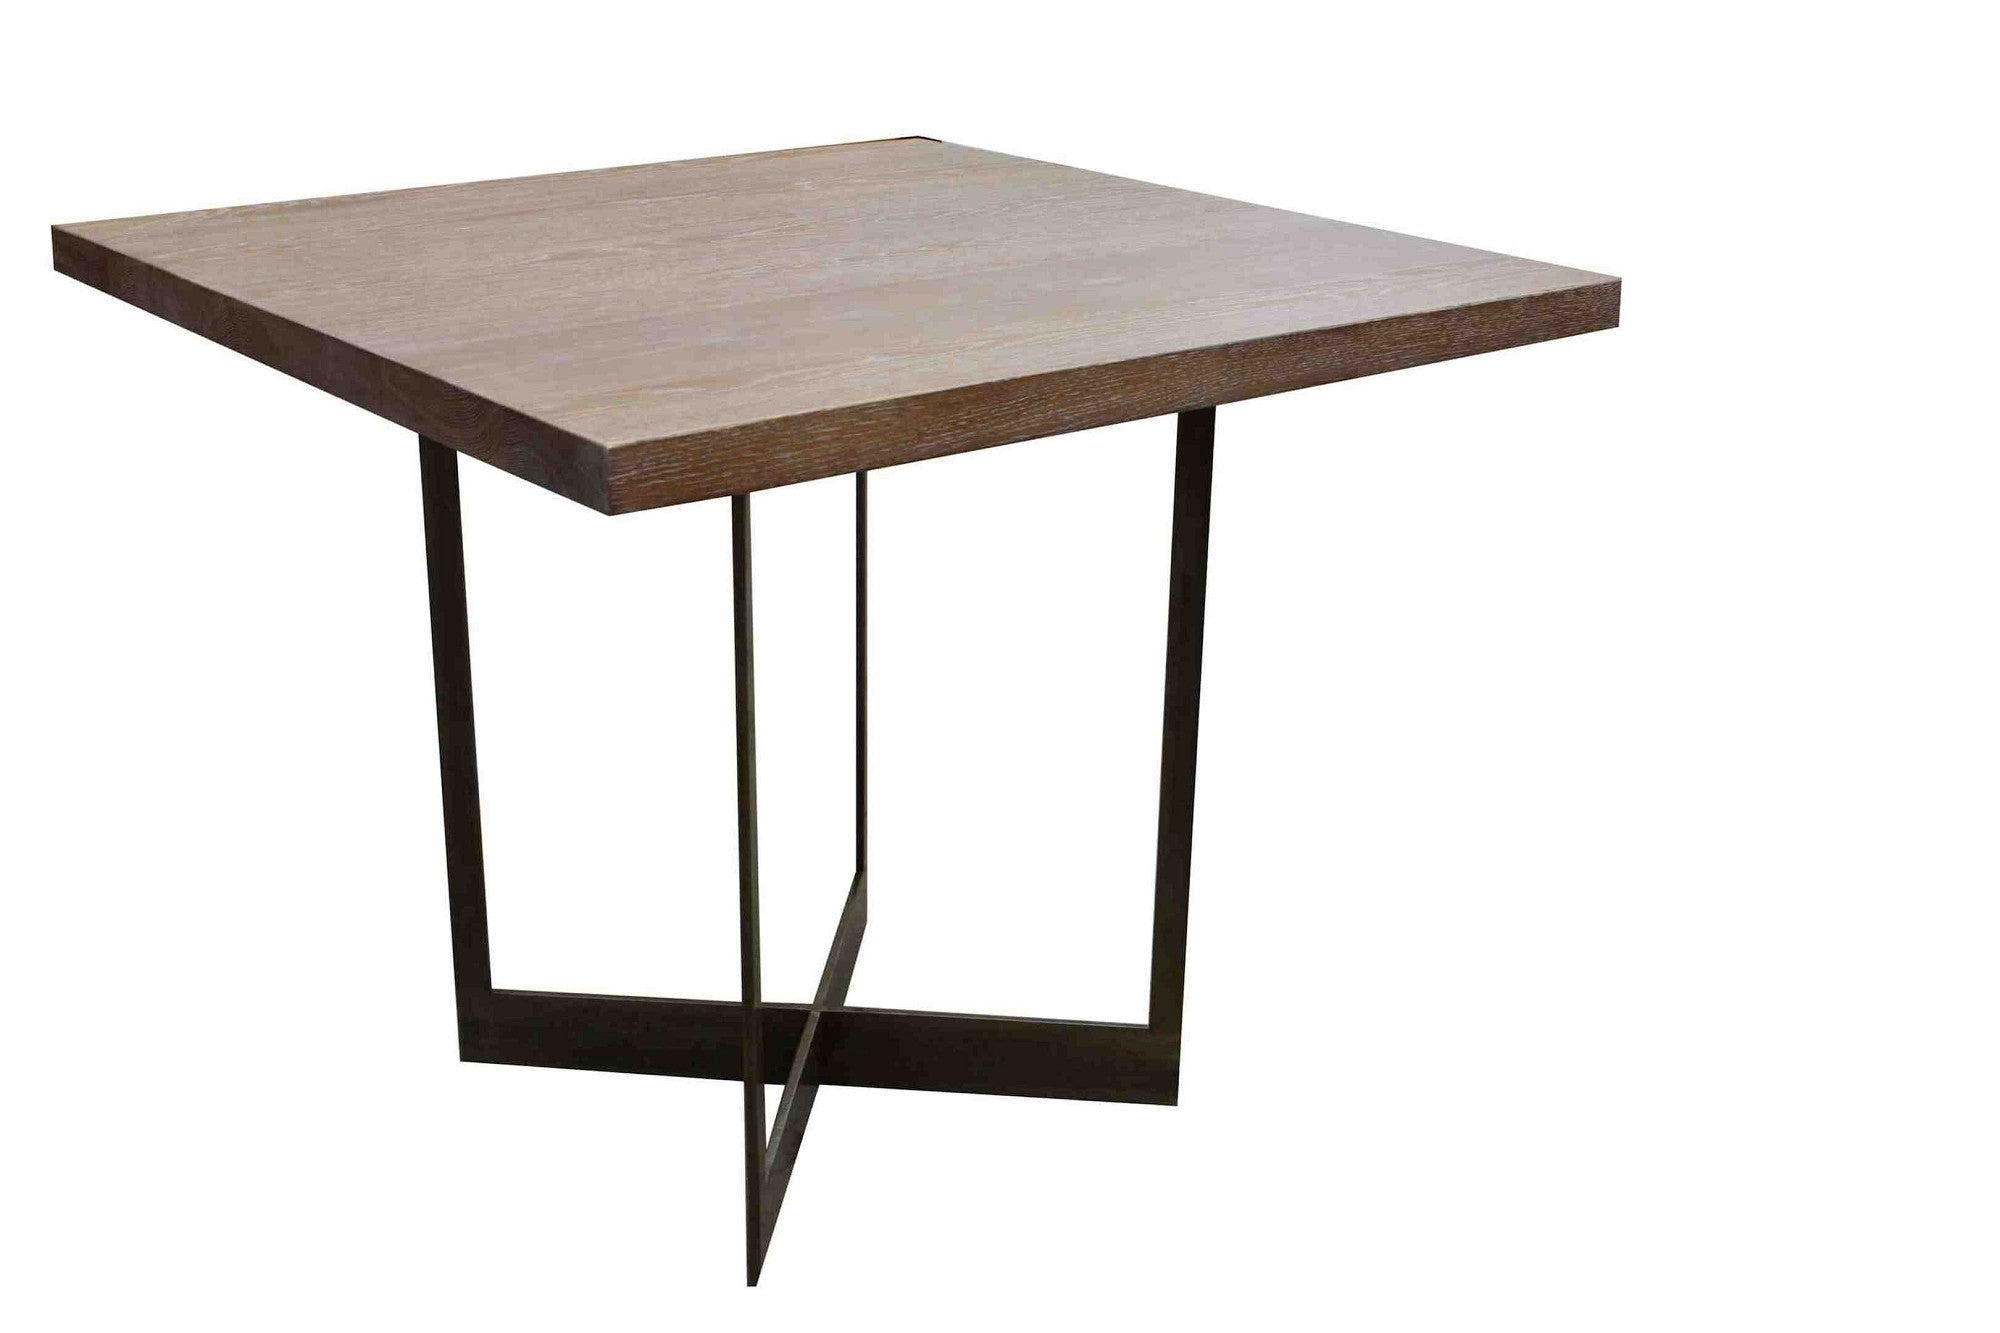 Charmant Industrial Modern Game Table ...